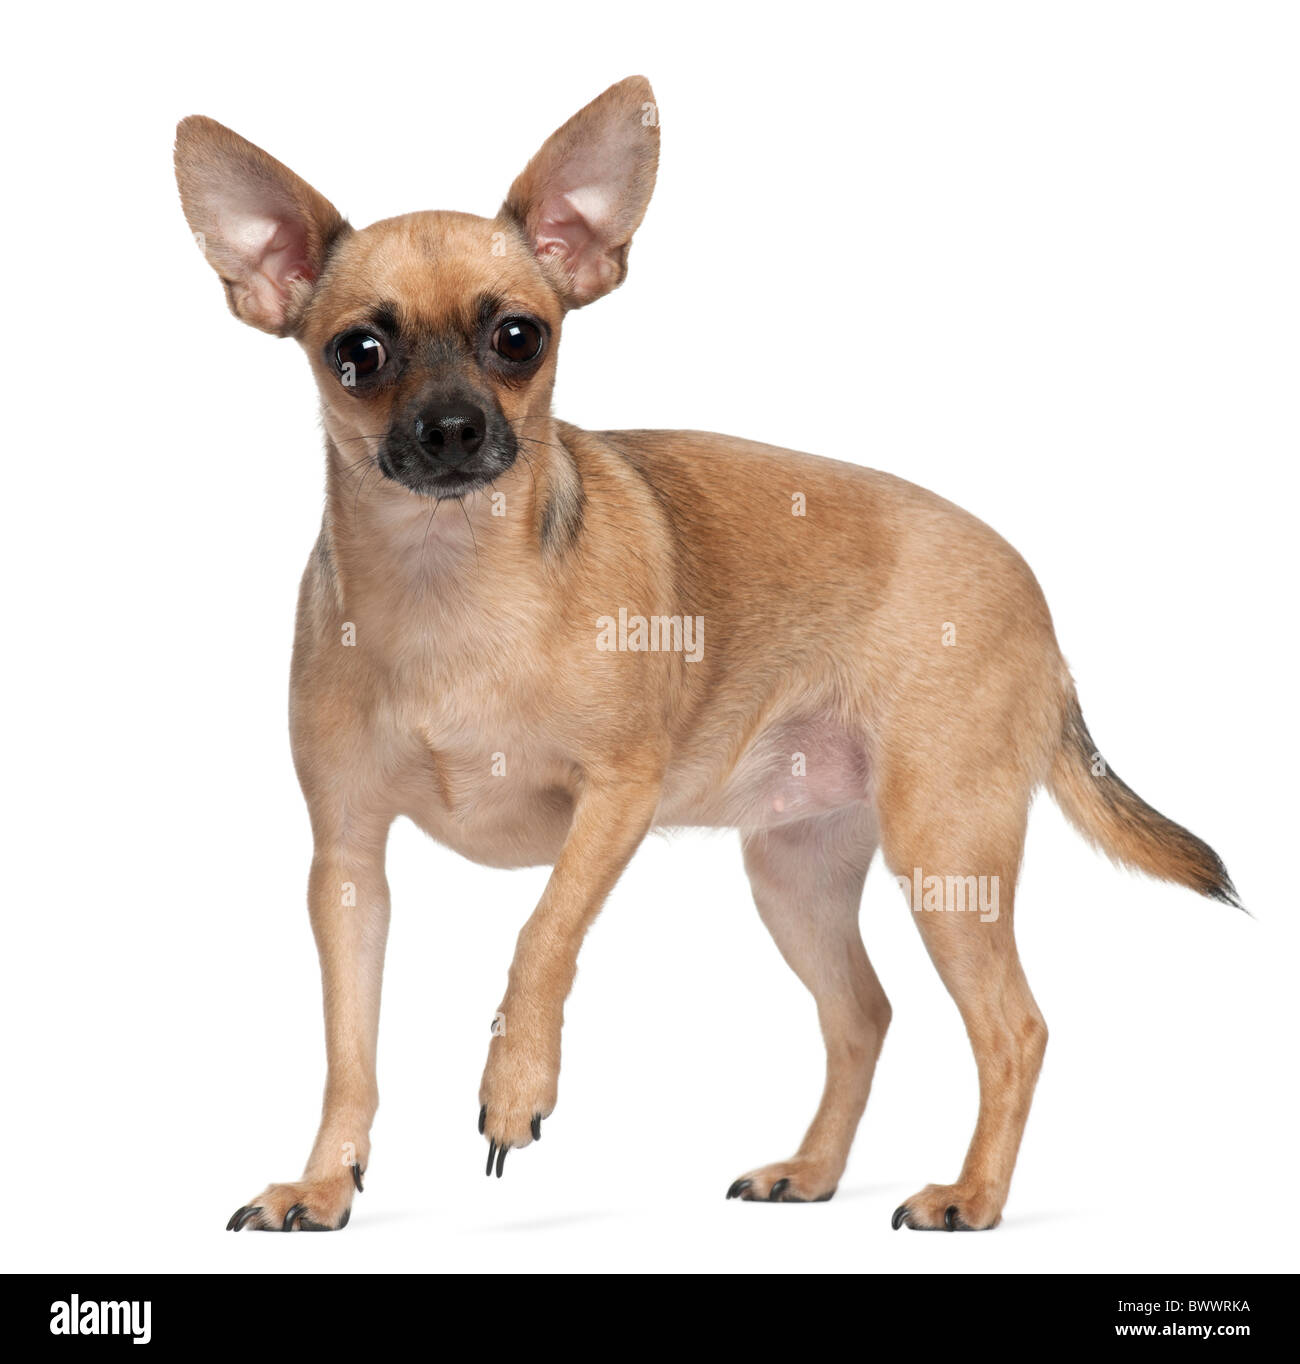 Pincher, 1 year old, standing in front of white background - Stock Image